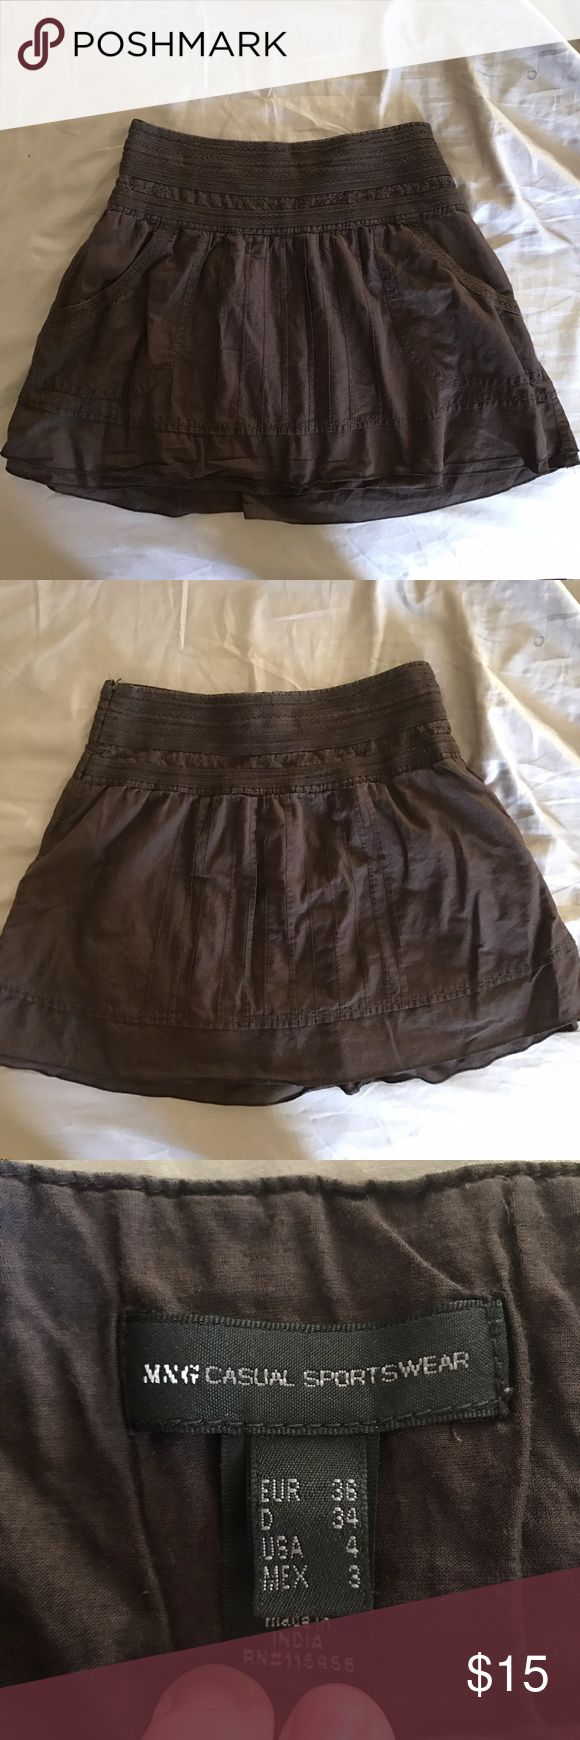 Mango skirt with pockets From the Spanish company Mango. Chocolate brown boho skirt with front pockets! Cute embroidered detail. In EUC Mango Skirts Mini